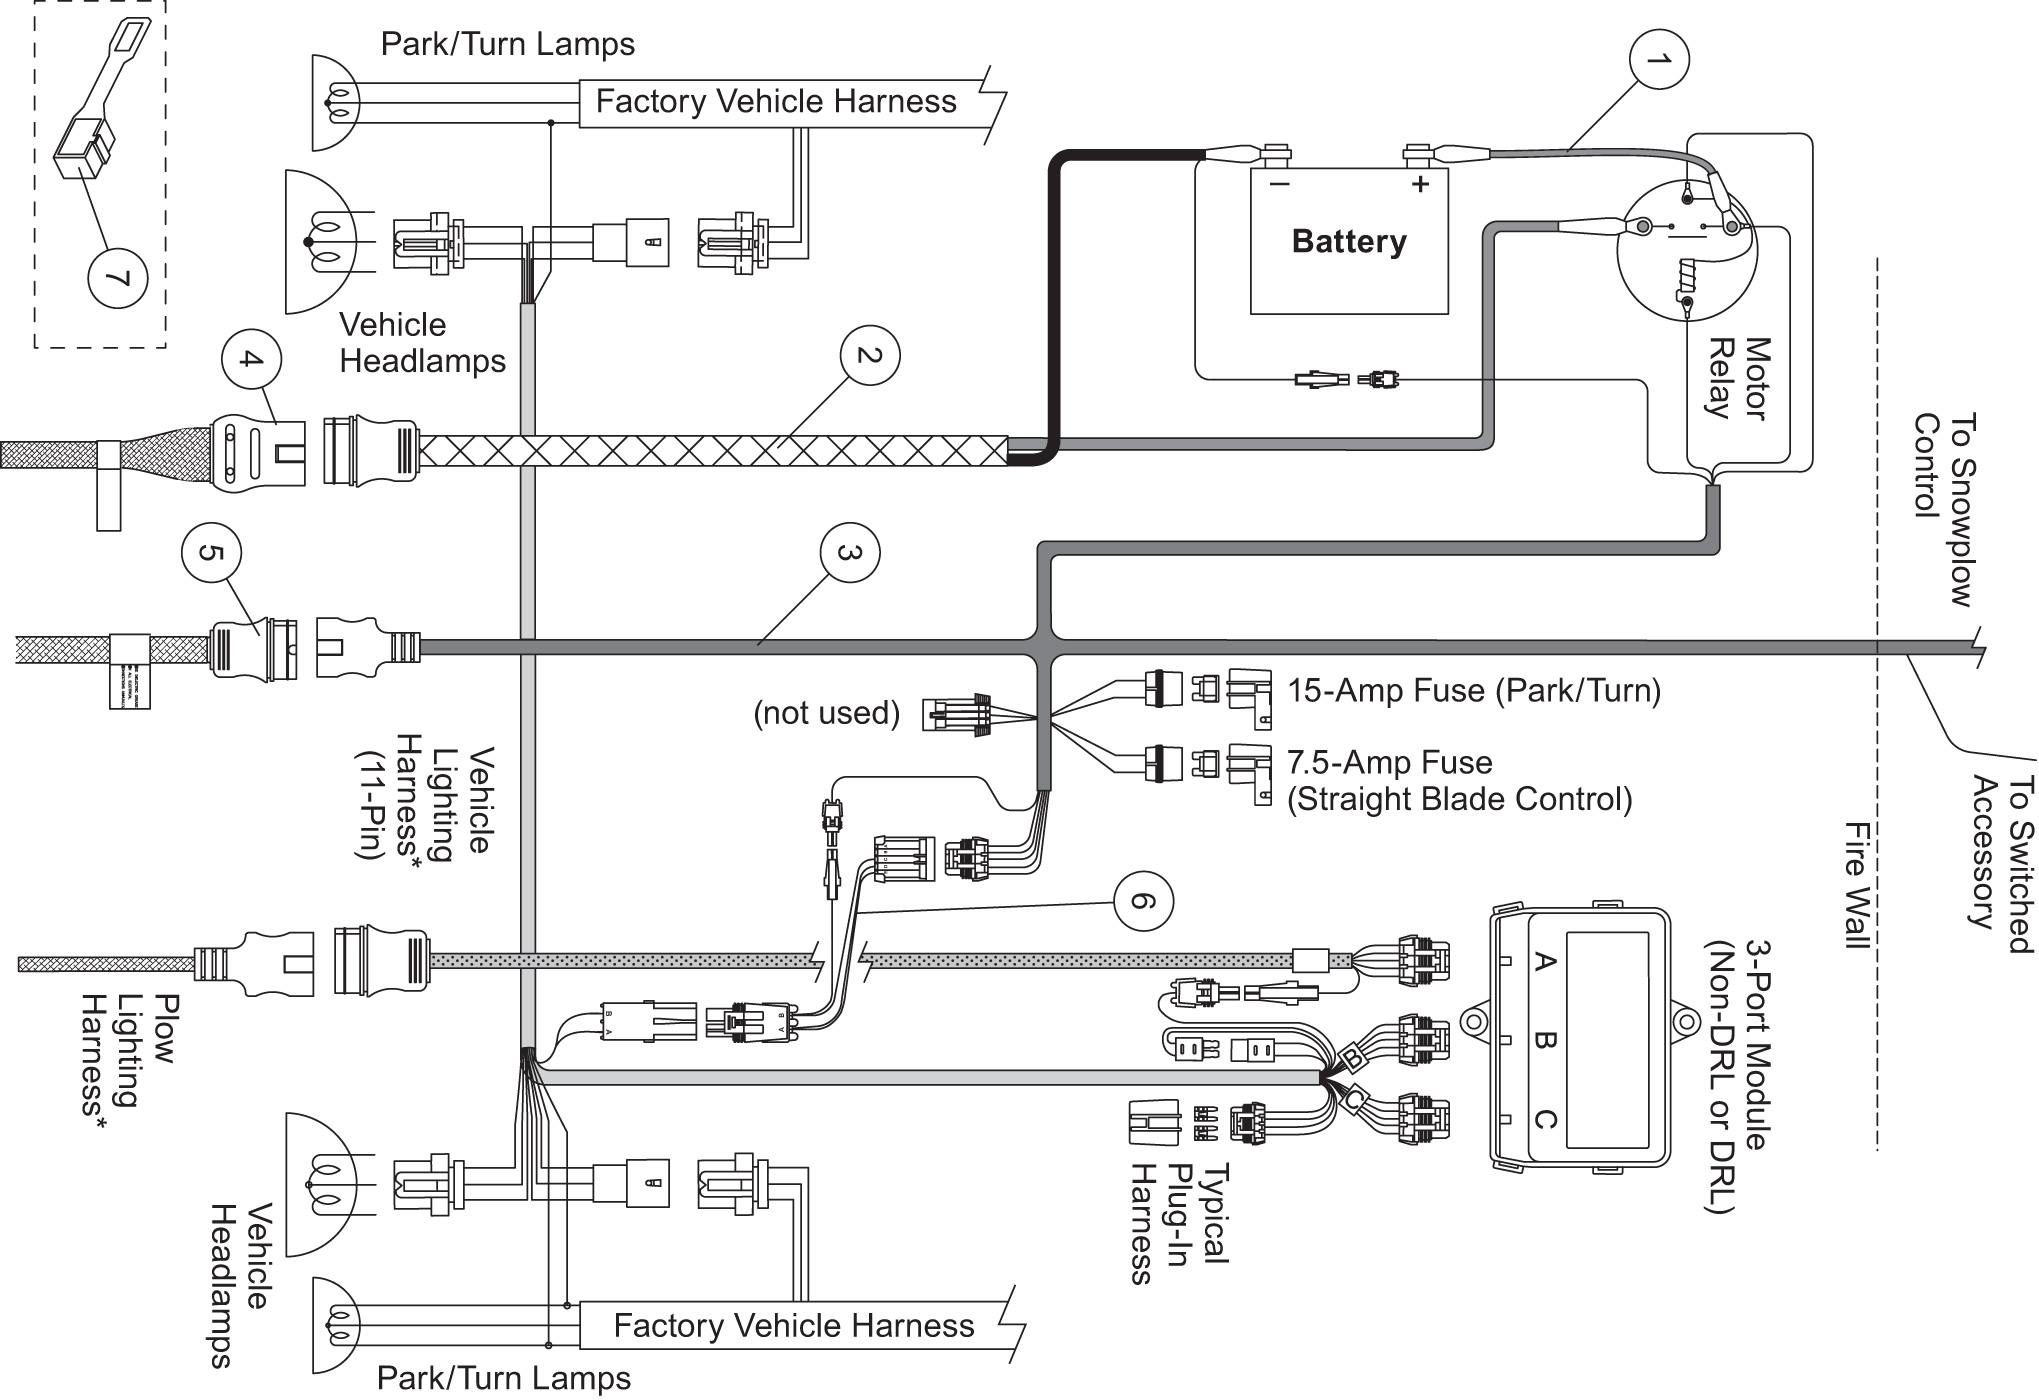 buyers salt spreader wiring diagram 4f8010 western salt spreader wiring diagram digital resources  western salt spreader wiring diagram